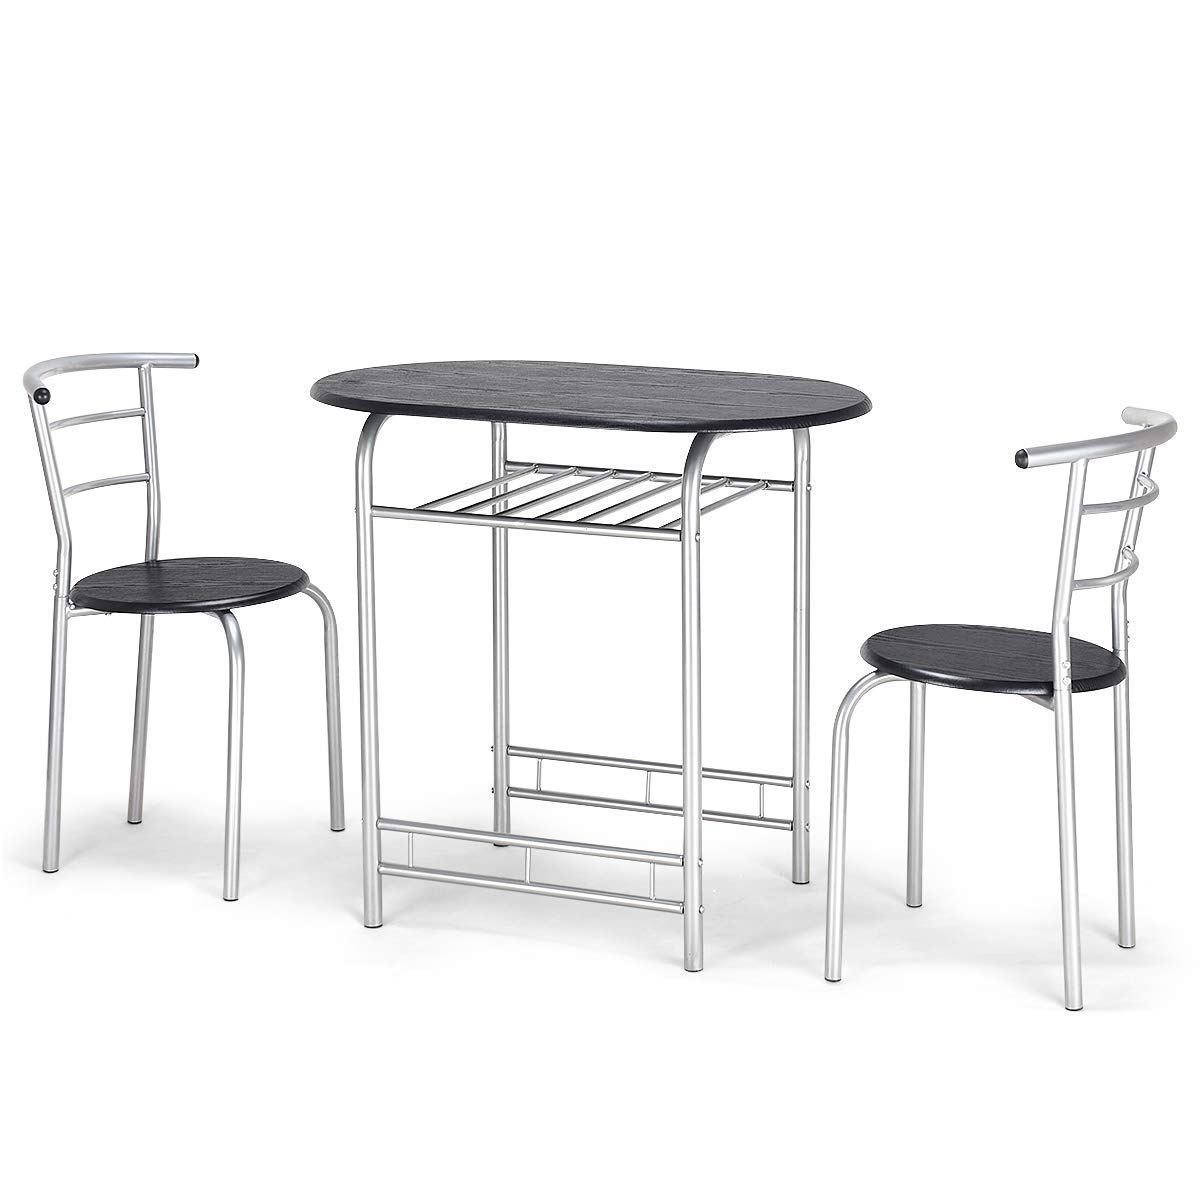 Giantex 3 PCS Bistro Dining Set Table and 2 Chairs Kitchen Furniture Pub Home Restaurant Table Chair Sets (Black)